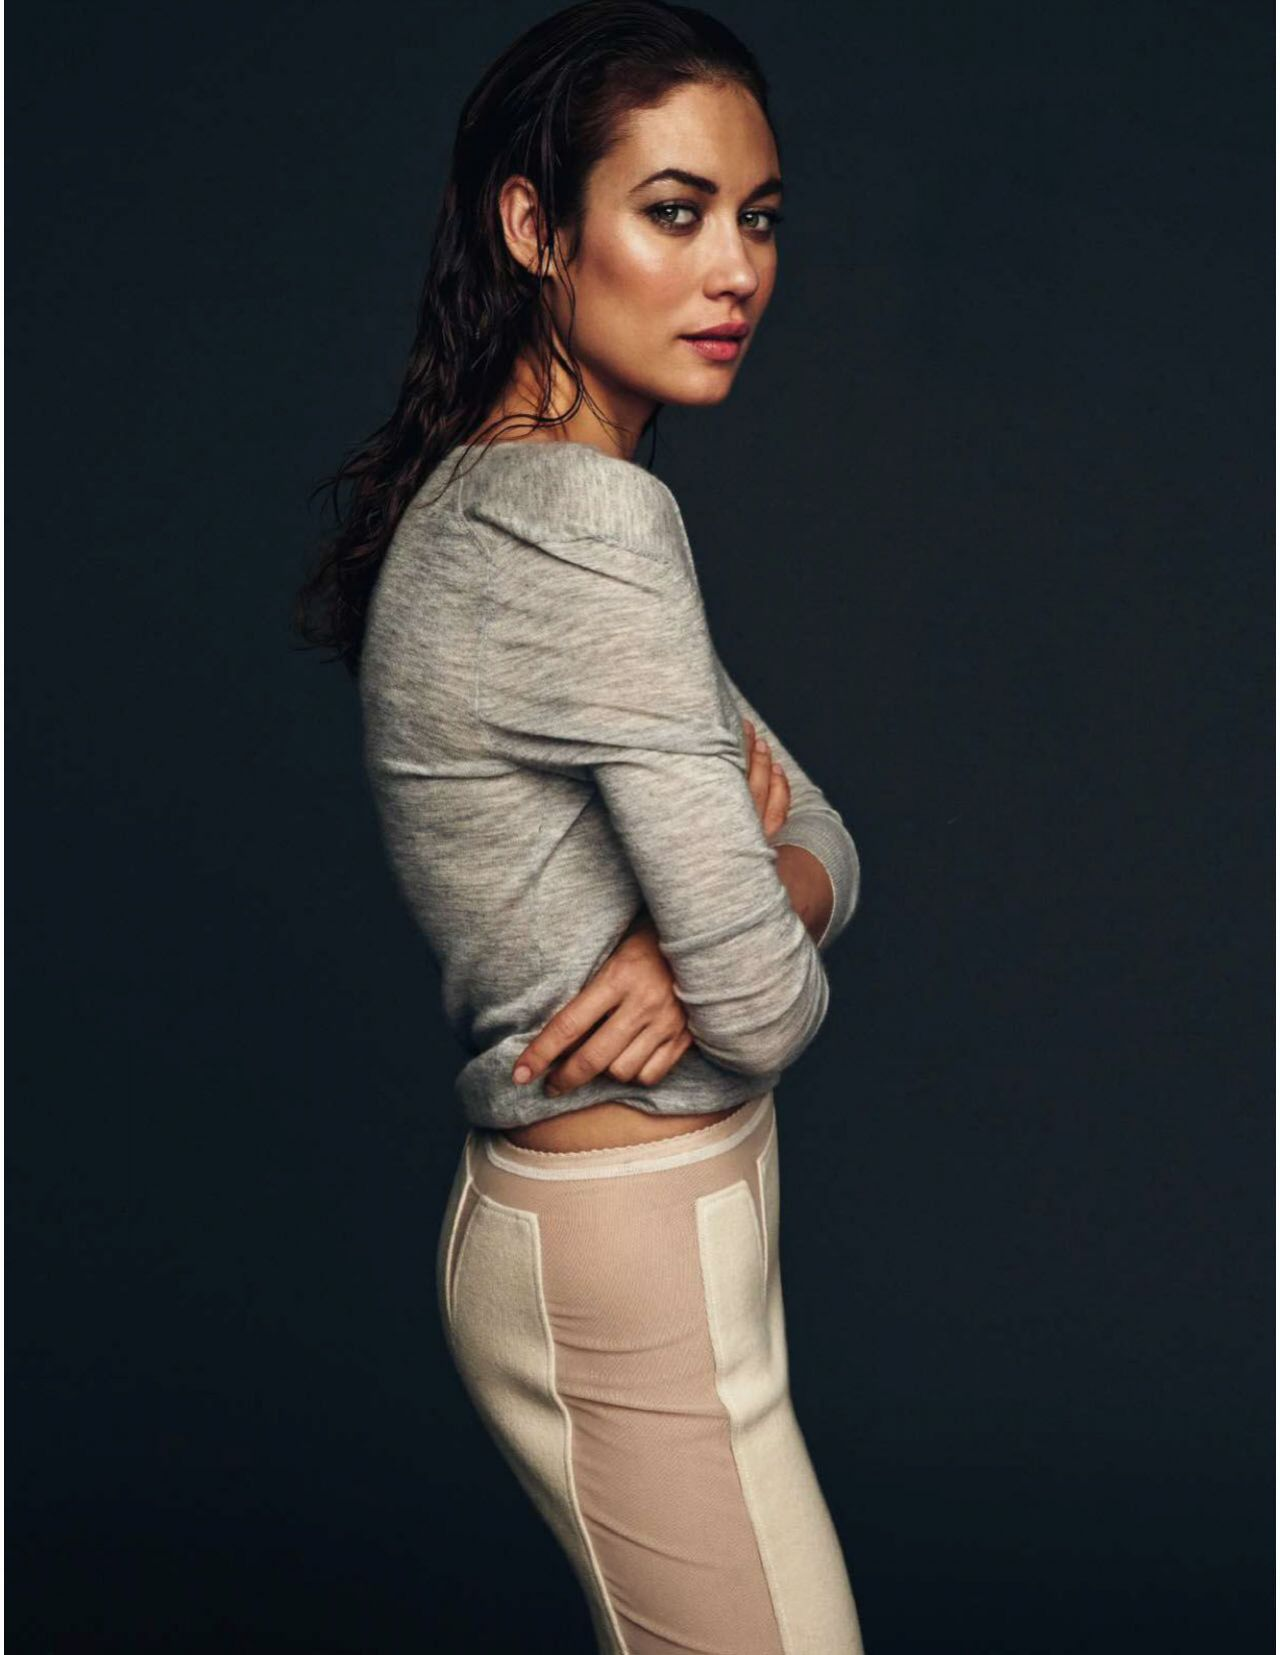 Olga Kurylenko – Elle Magazine Spain, July 2016